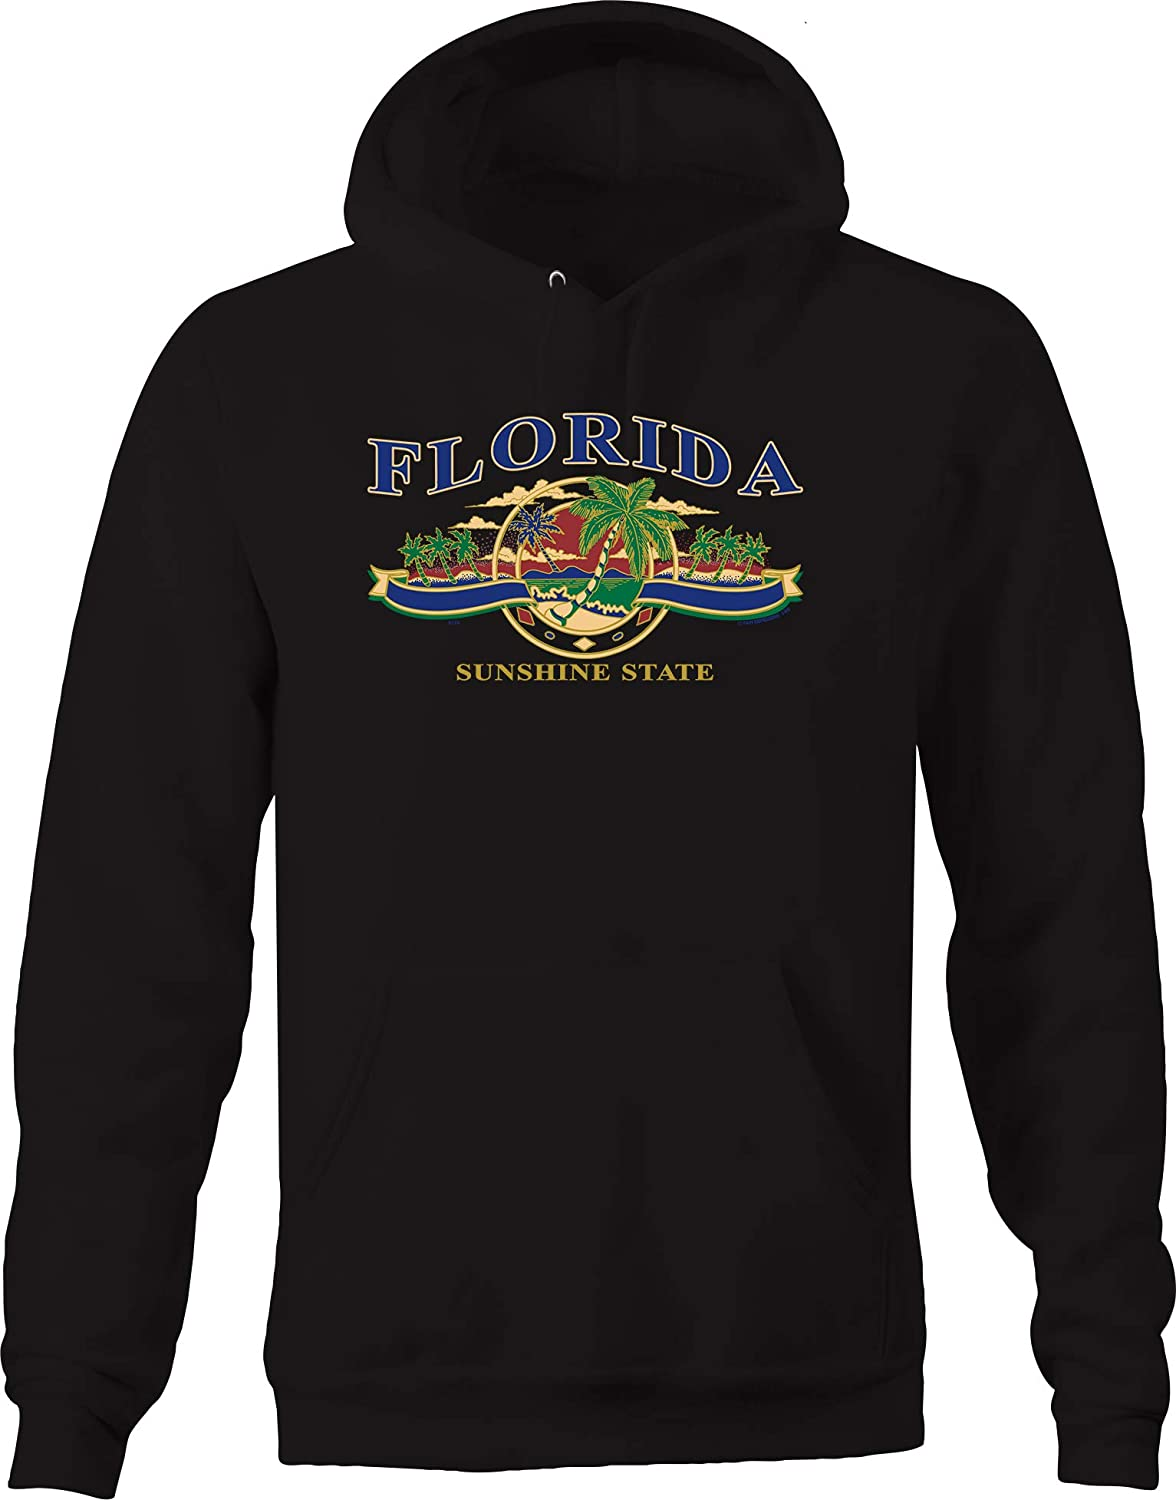 Florida Sunshine State Palm Trees Relaxing Ocean Beach Waves Hoodies for Men